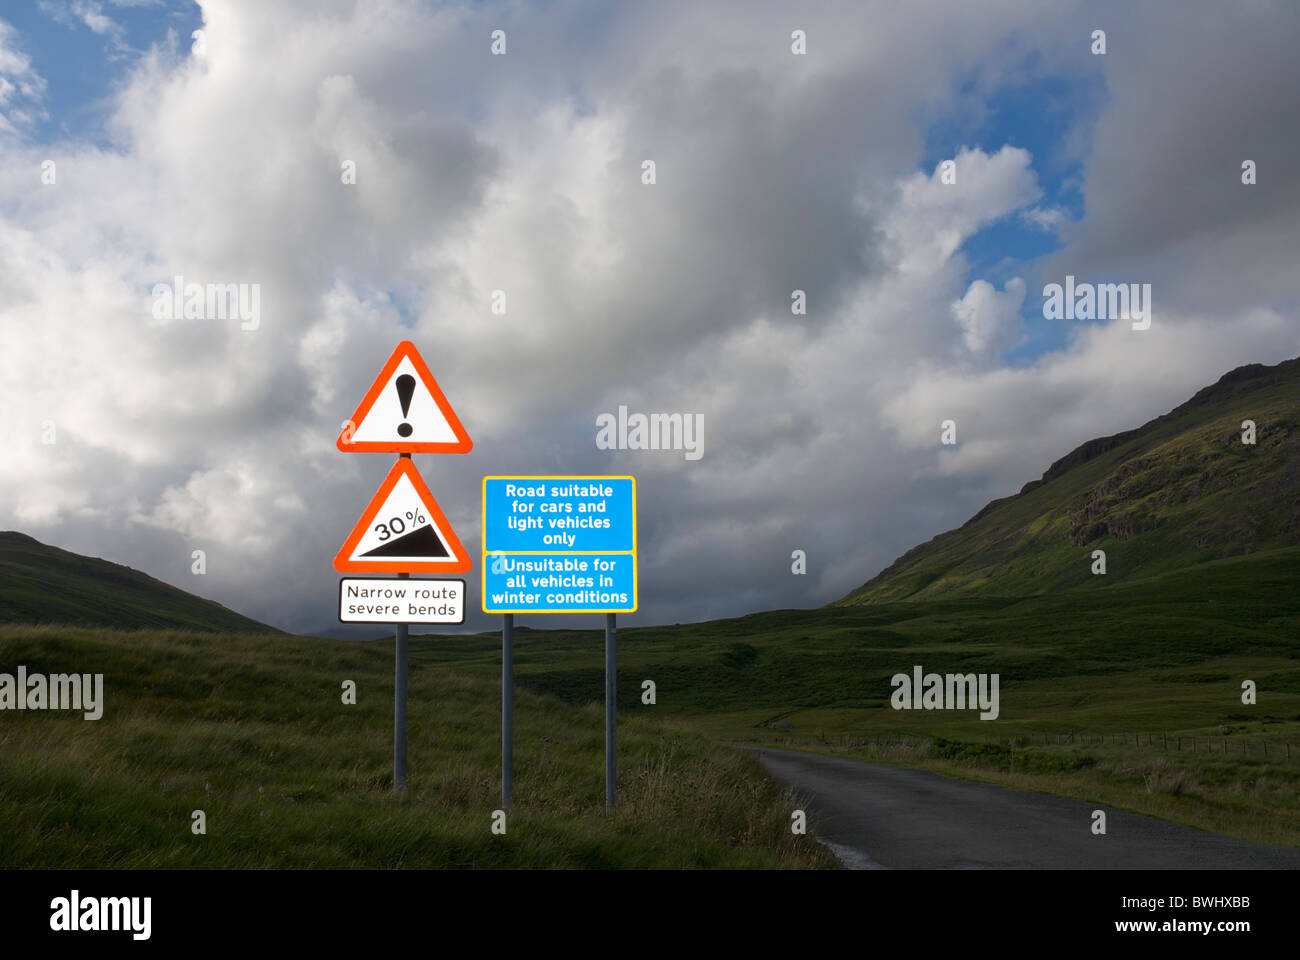 Road signs warning of steep roads and winter conditions, Hardknott and Wrynose Passes, Lake District, Cumbria, England - Stock Image